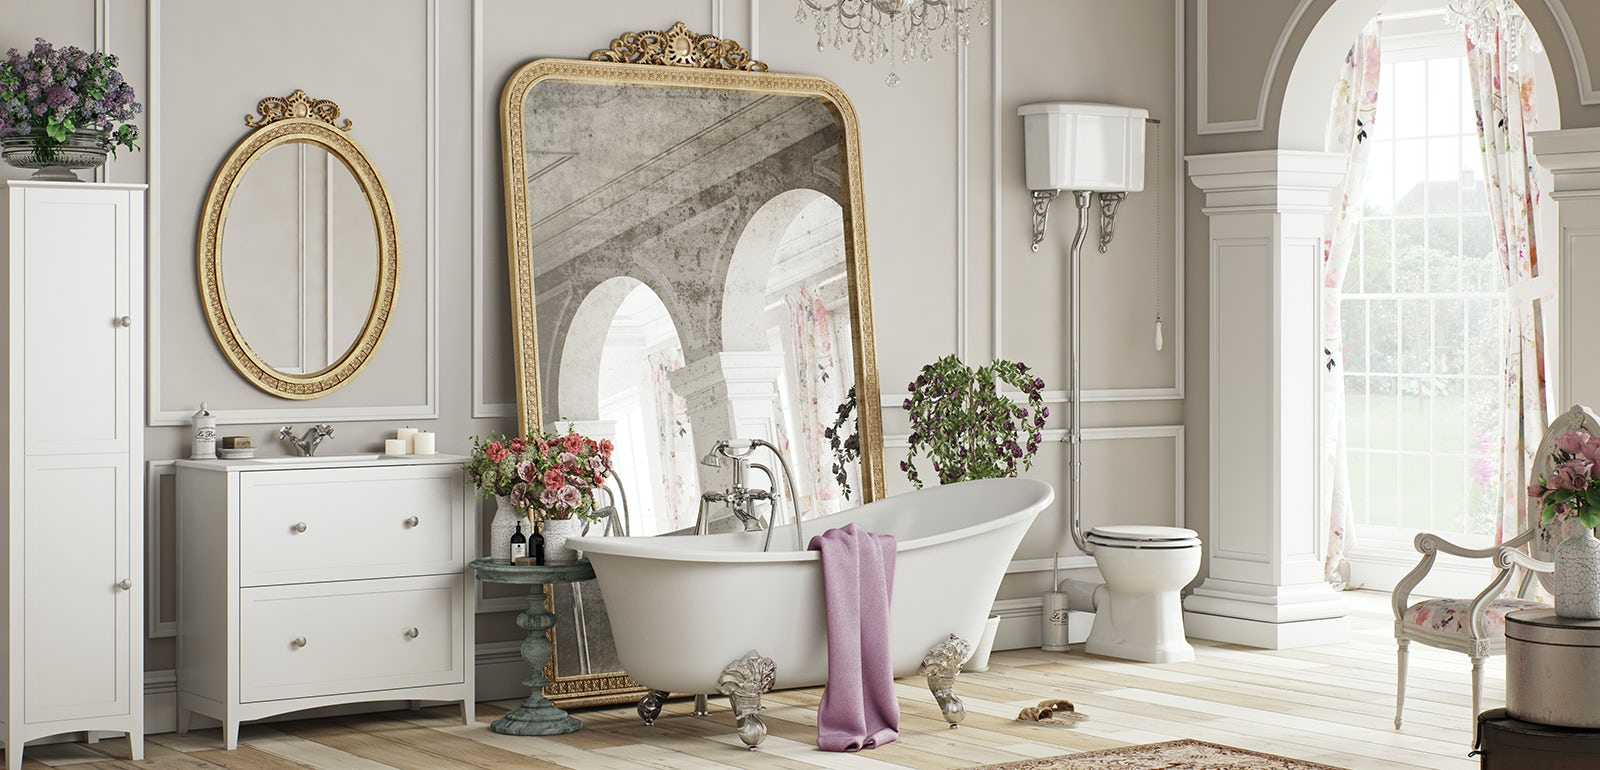 Bathroom ideas: French Floral | VictoriaPlum.com